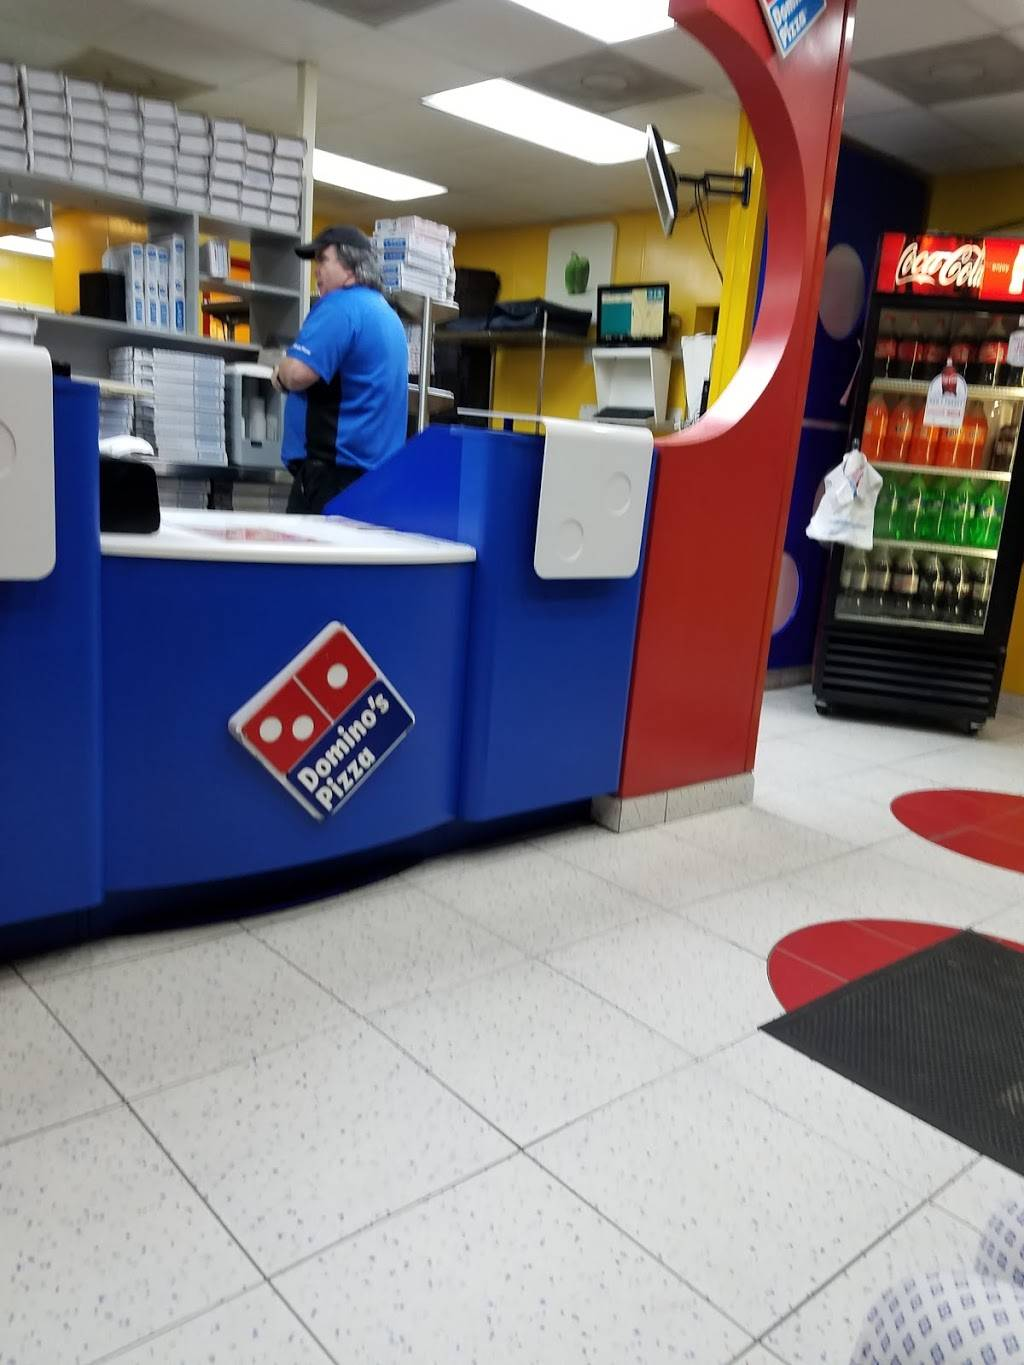 Dominos Pizza - meal delivery  | Photo 7 of 10 | Address: 1710 Decatur Hwy Ste 1, Fultondale, AL 35068, USA | Phone: (205) 841-3700